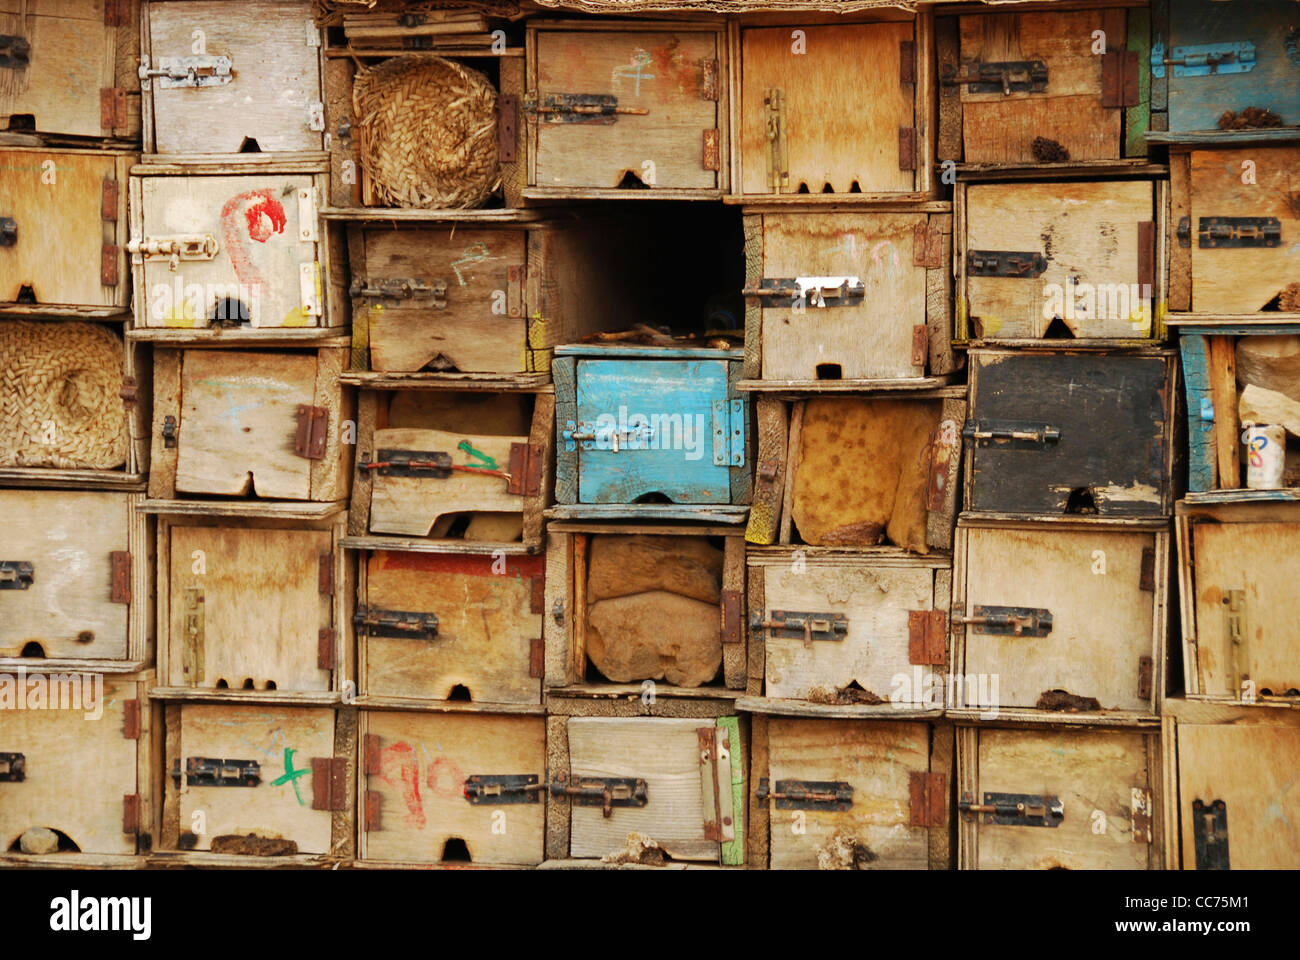 Yemen, inland, detail of weathered wooden boxes with blue colored box in between Stock Photo